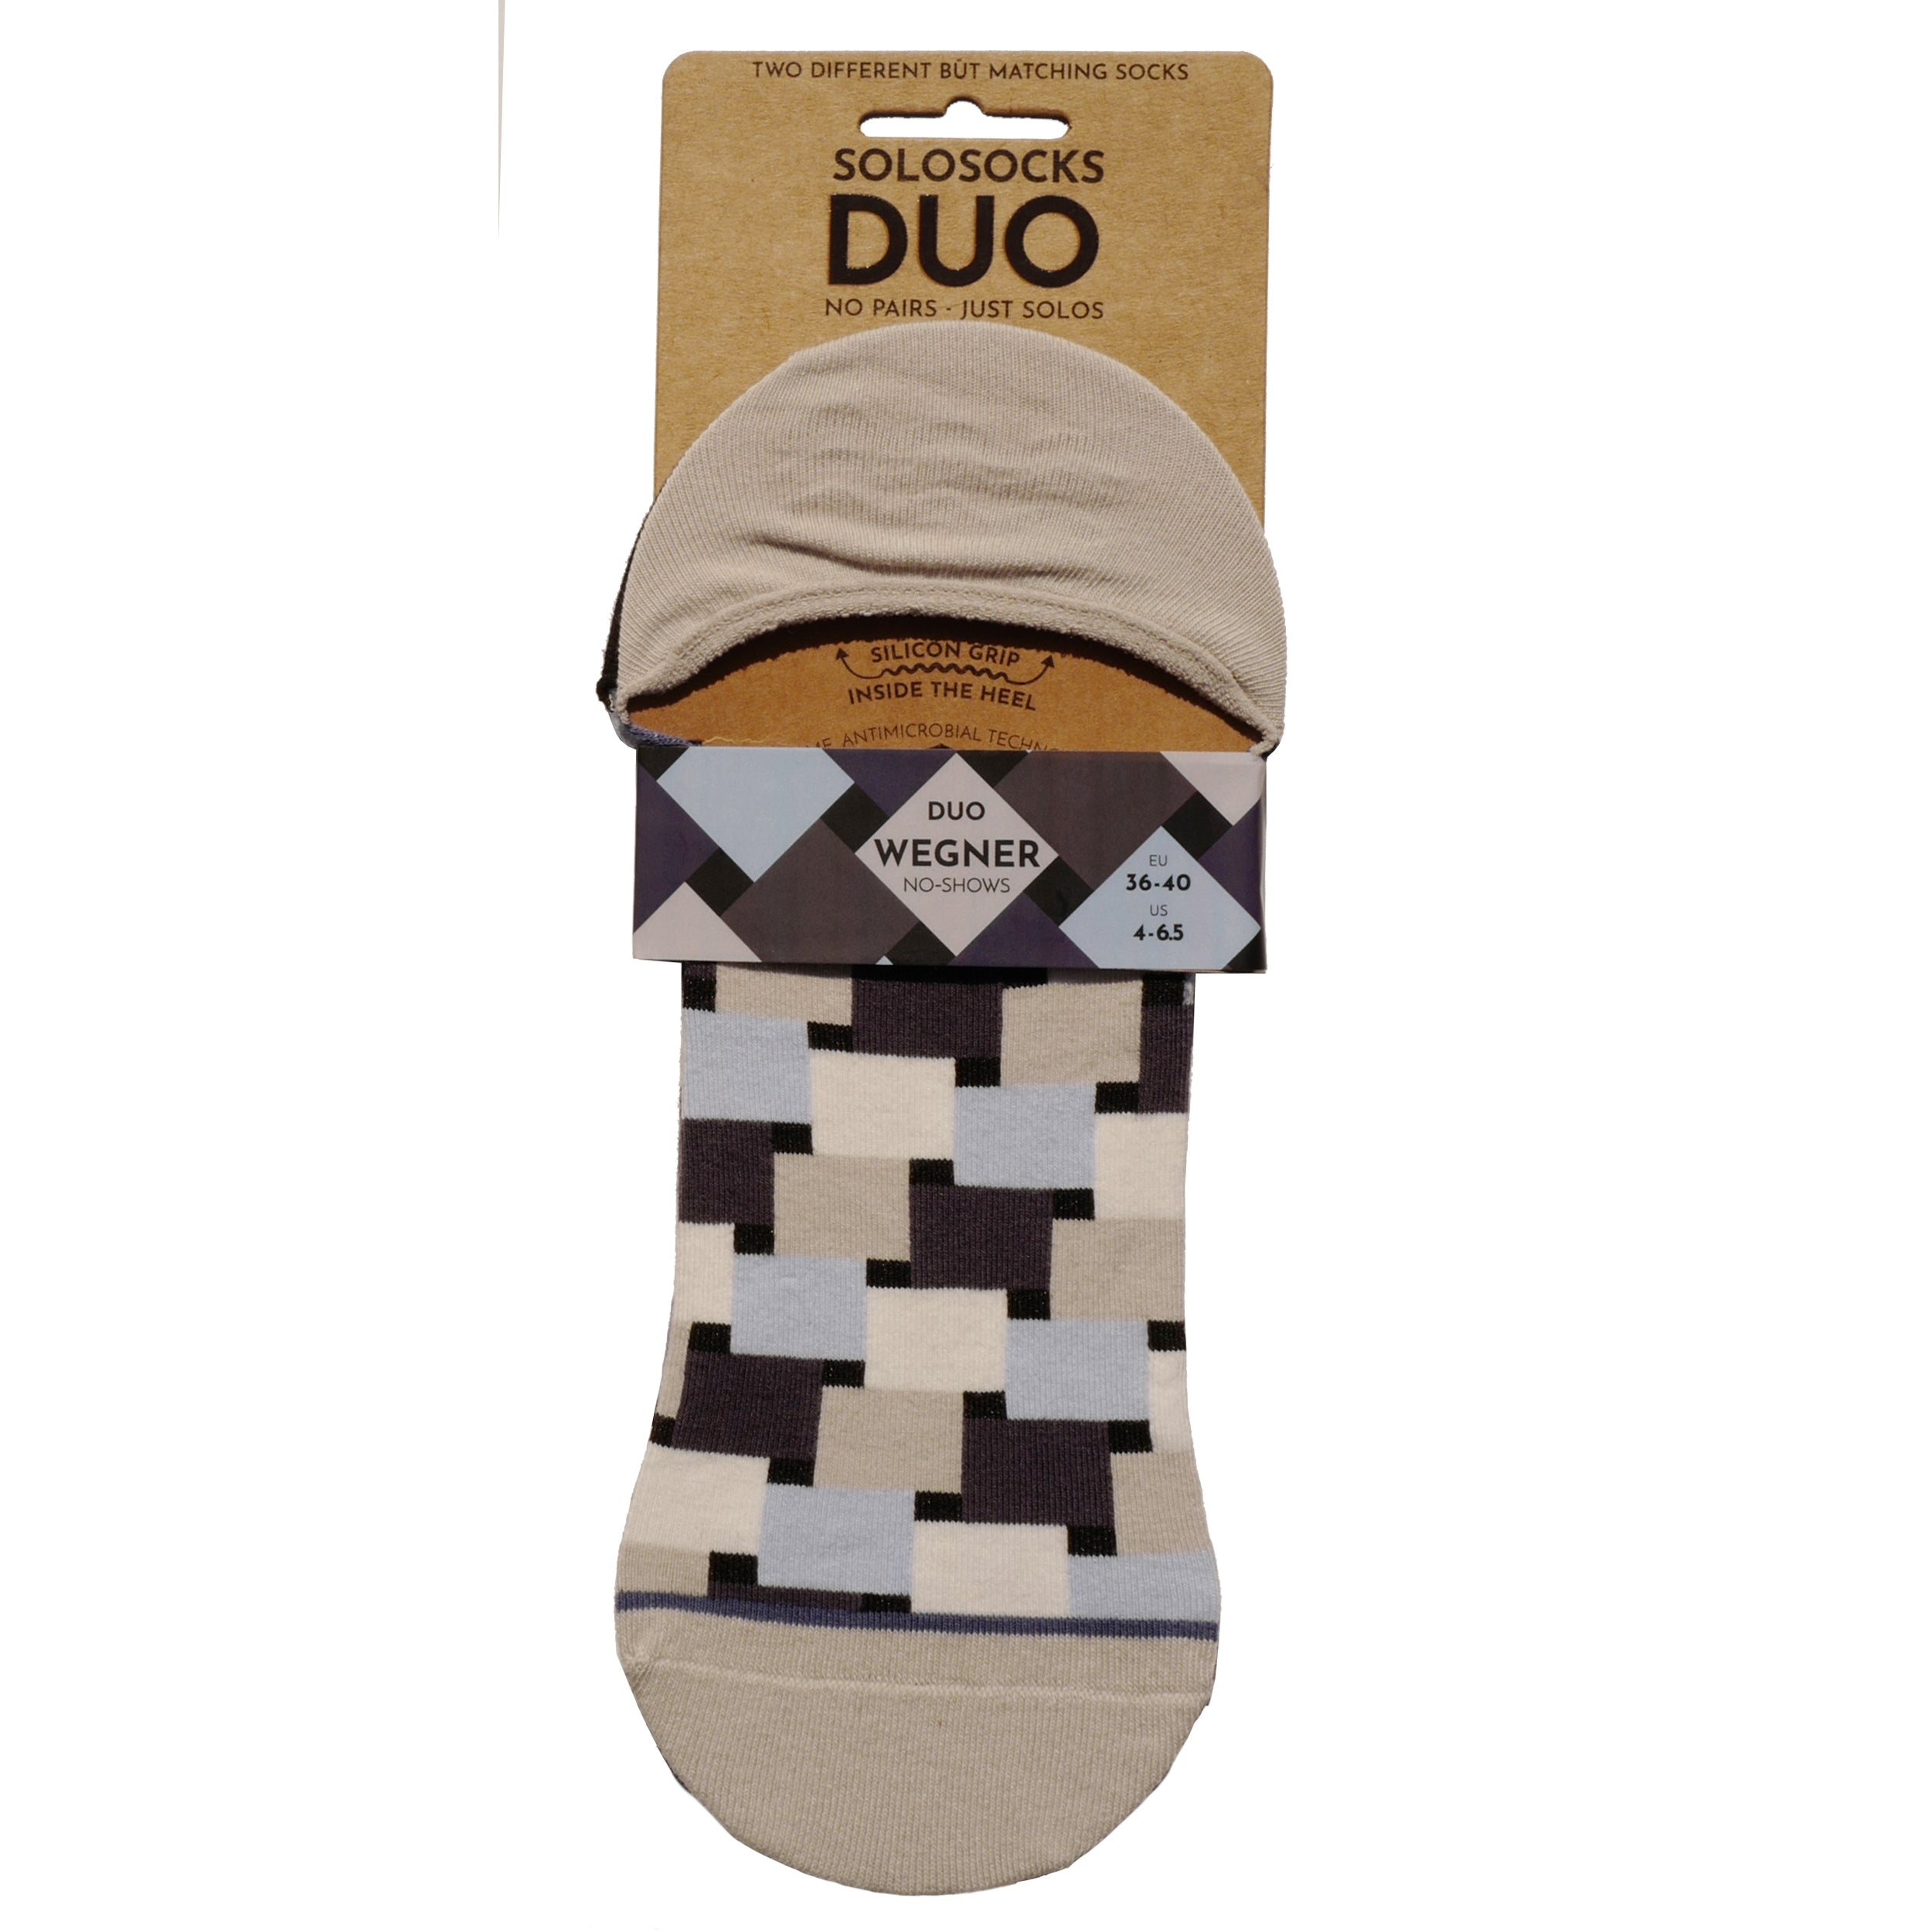 Wegner No-Shows Duo - Two different but matching happy, colorful organic cotton no-show ankle sneaker socks made by SOLOSOCKS™ of Denmark. Sustainable Danish design socks for men & women | High quality but cheap and durable fashion socks | Worldwide delivery | Free shipping above €40